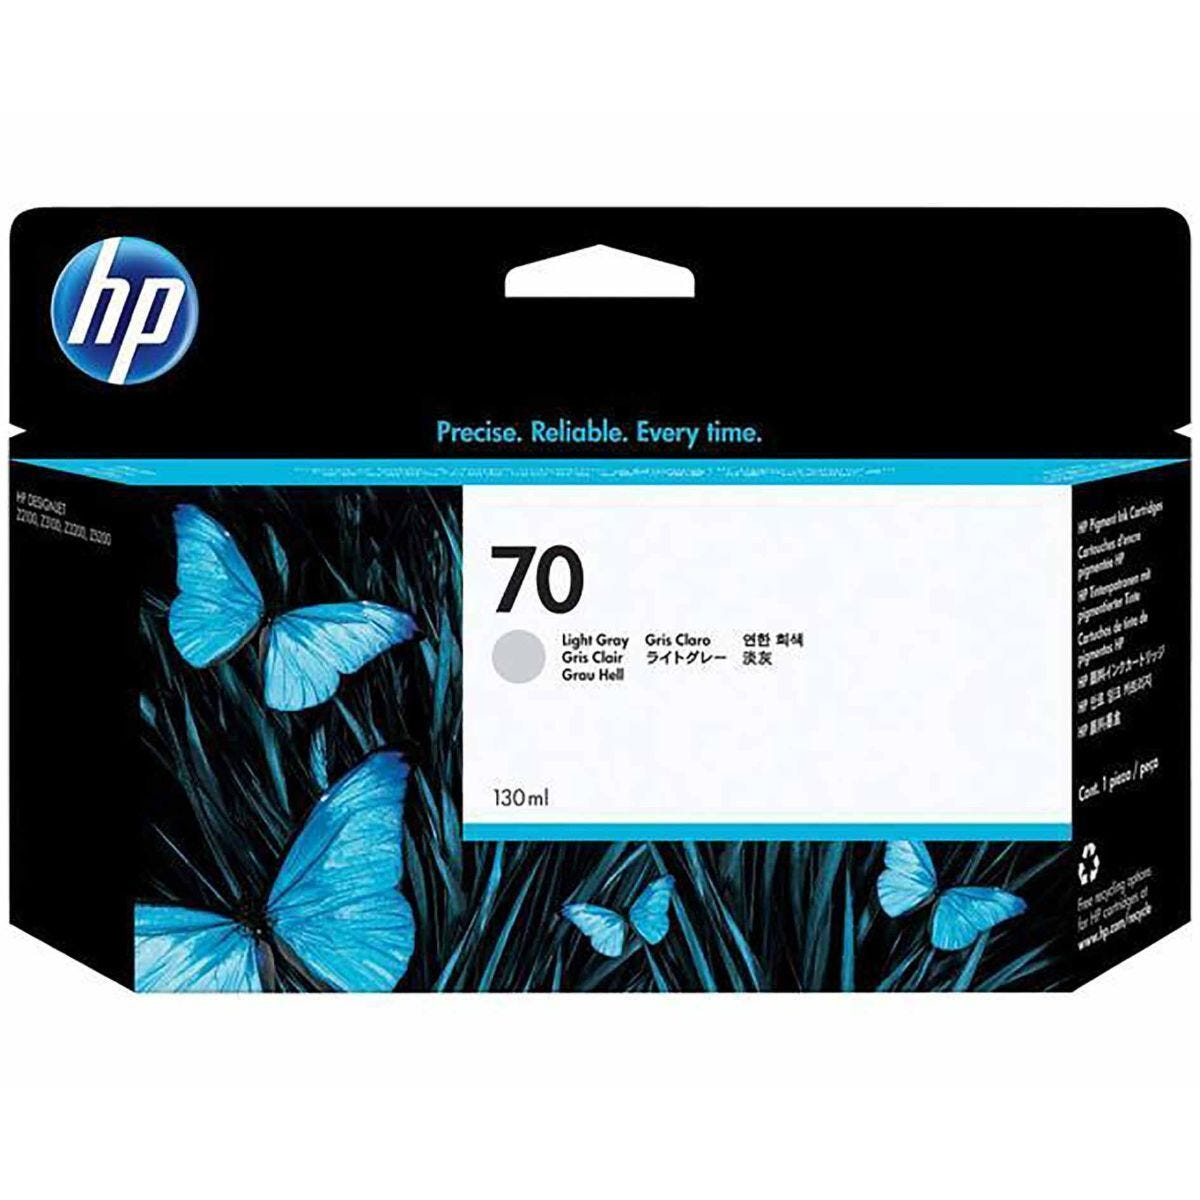 HP 70 Inkjet Cartridge Light Grey